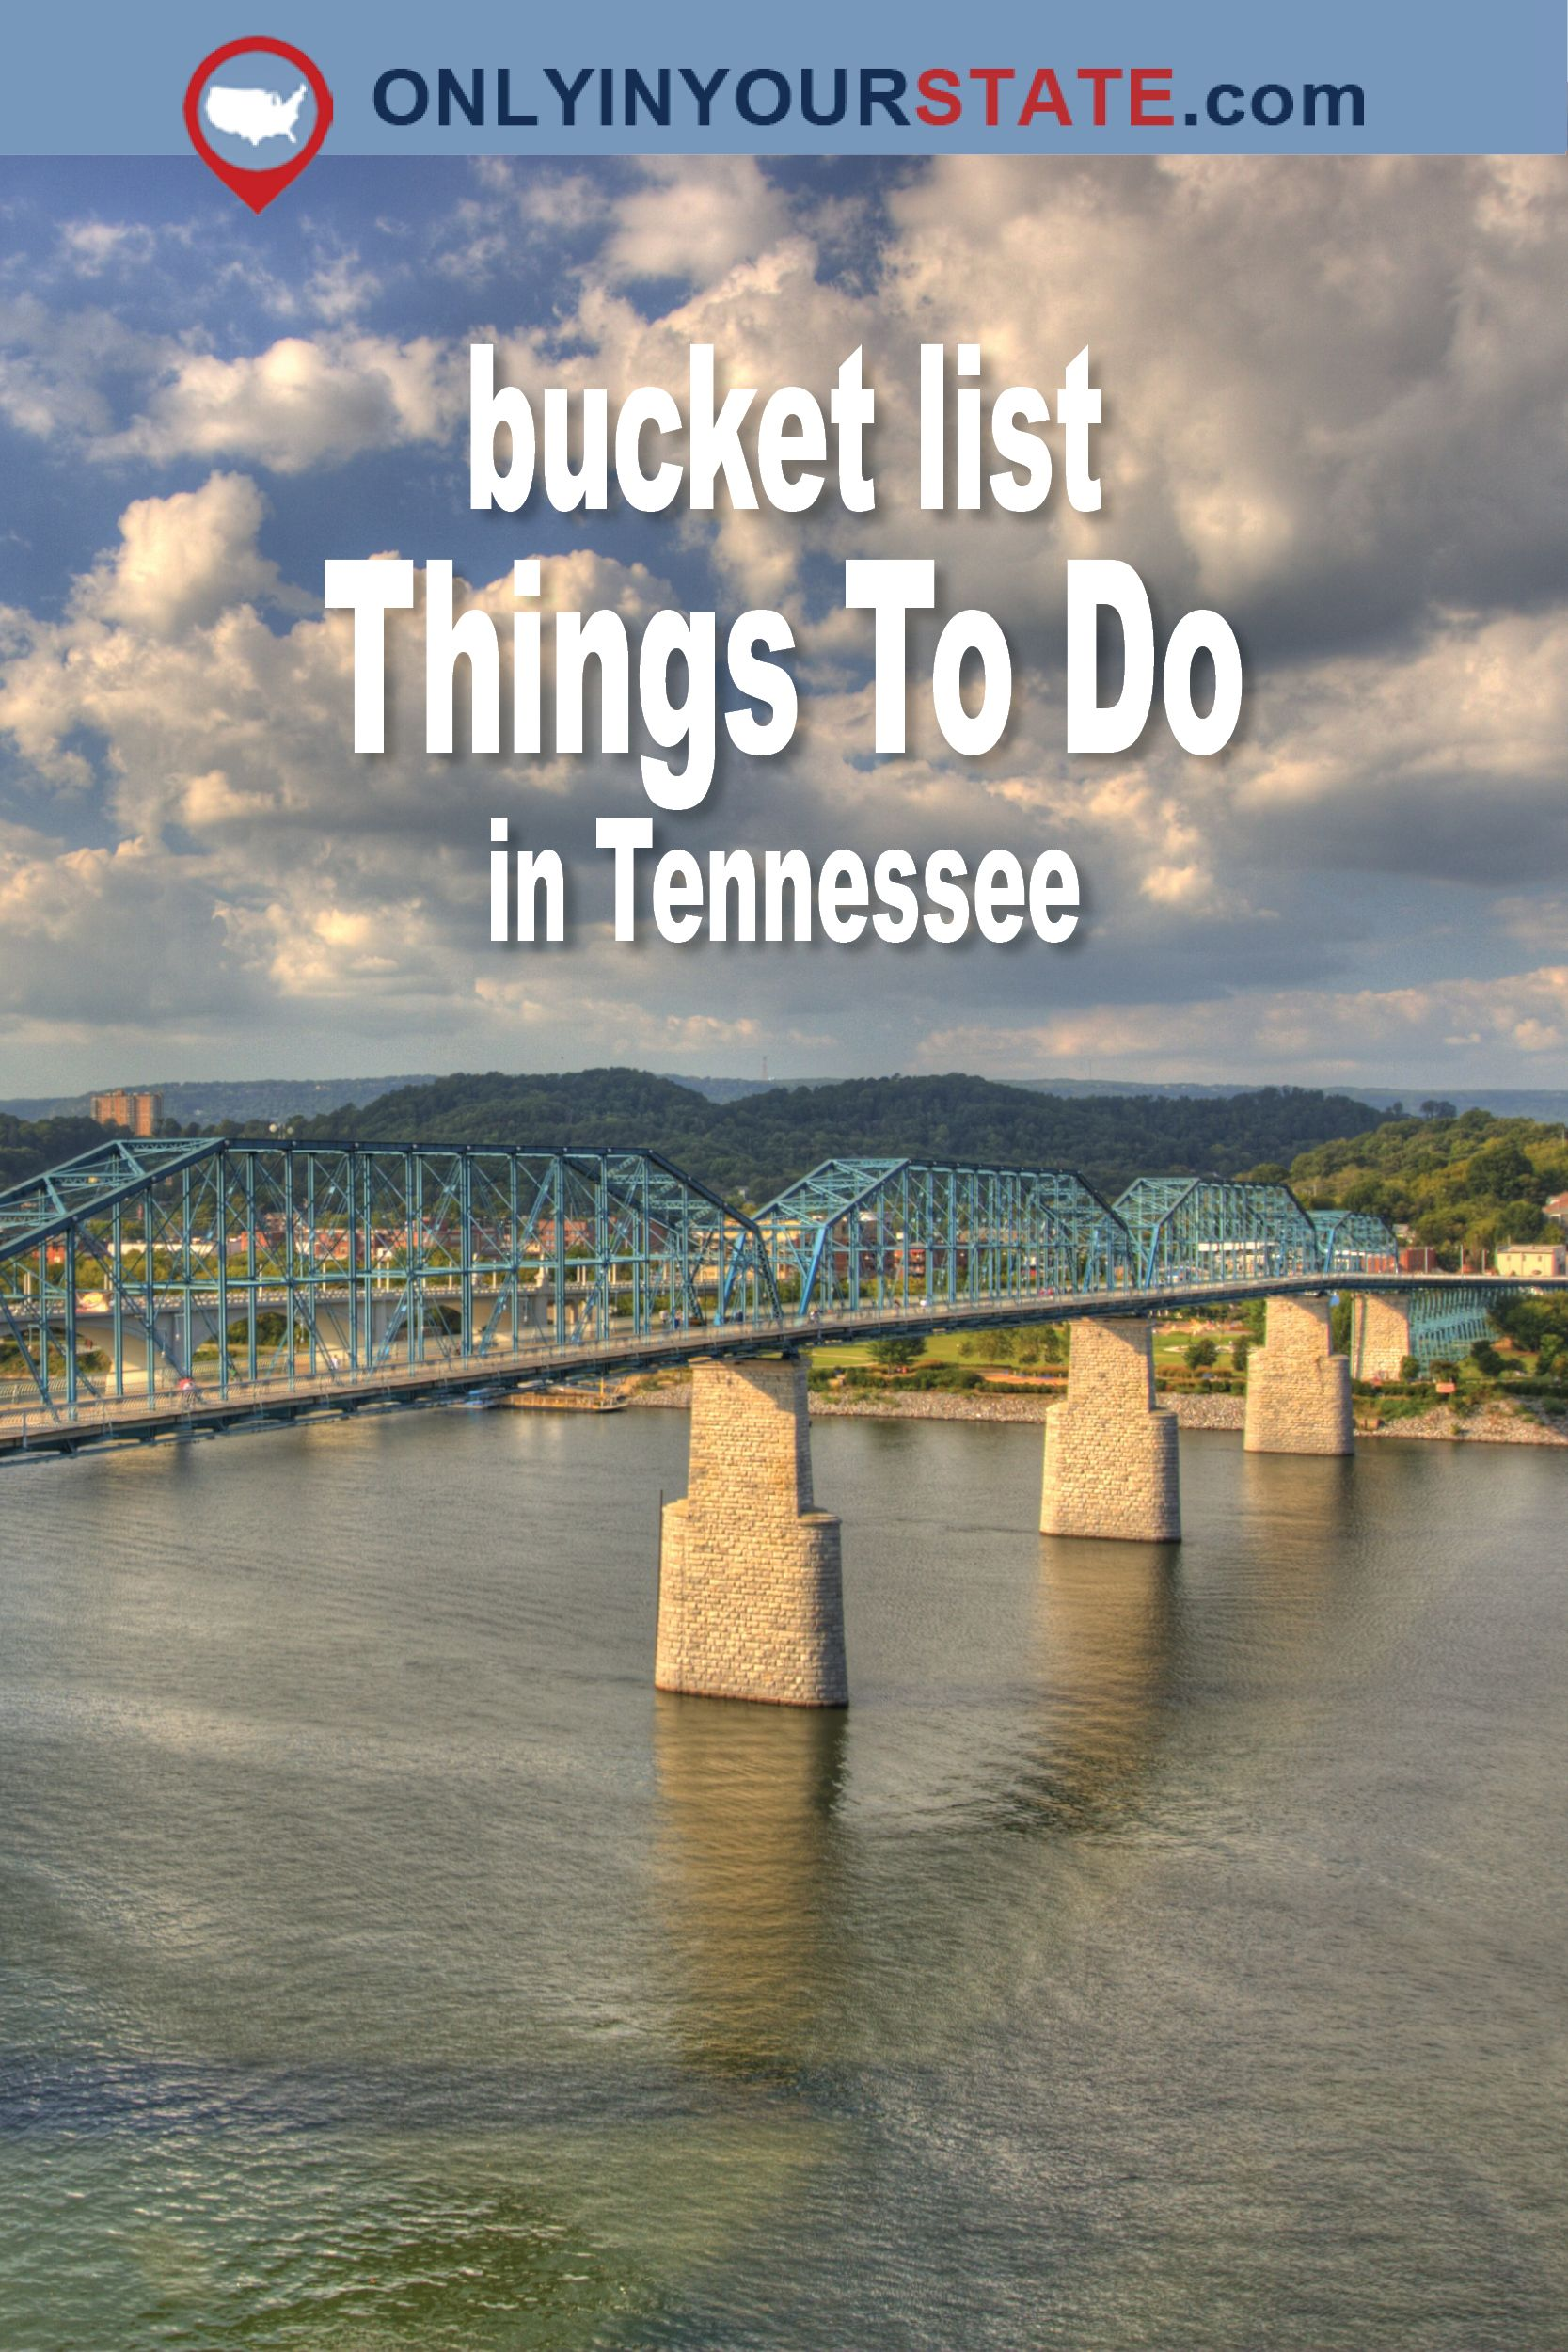 12 amazing things in tennessee you must do before you die weekend rh pinterest com best things to do in nashville for a weekend best things to do in nashville for a birthday